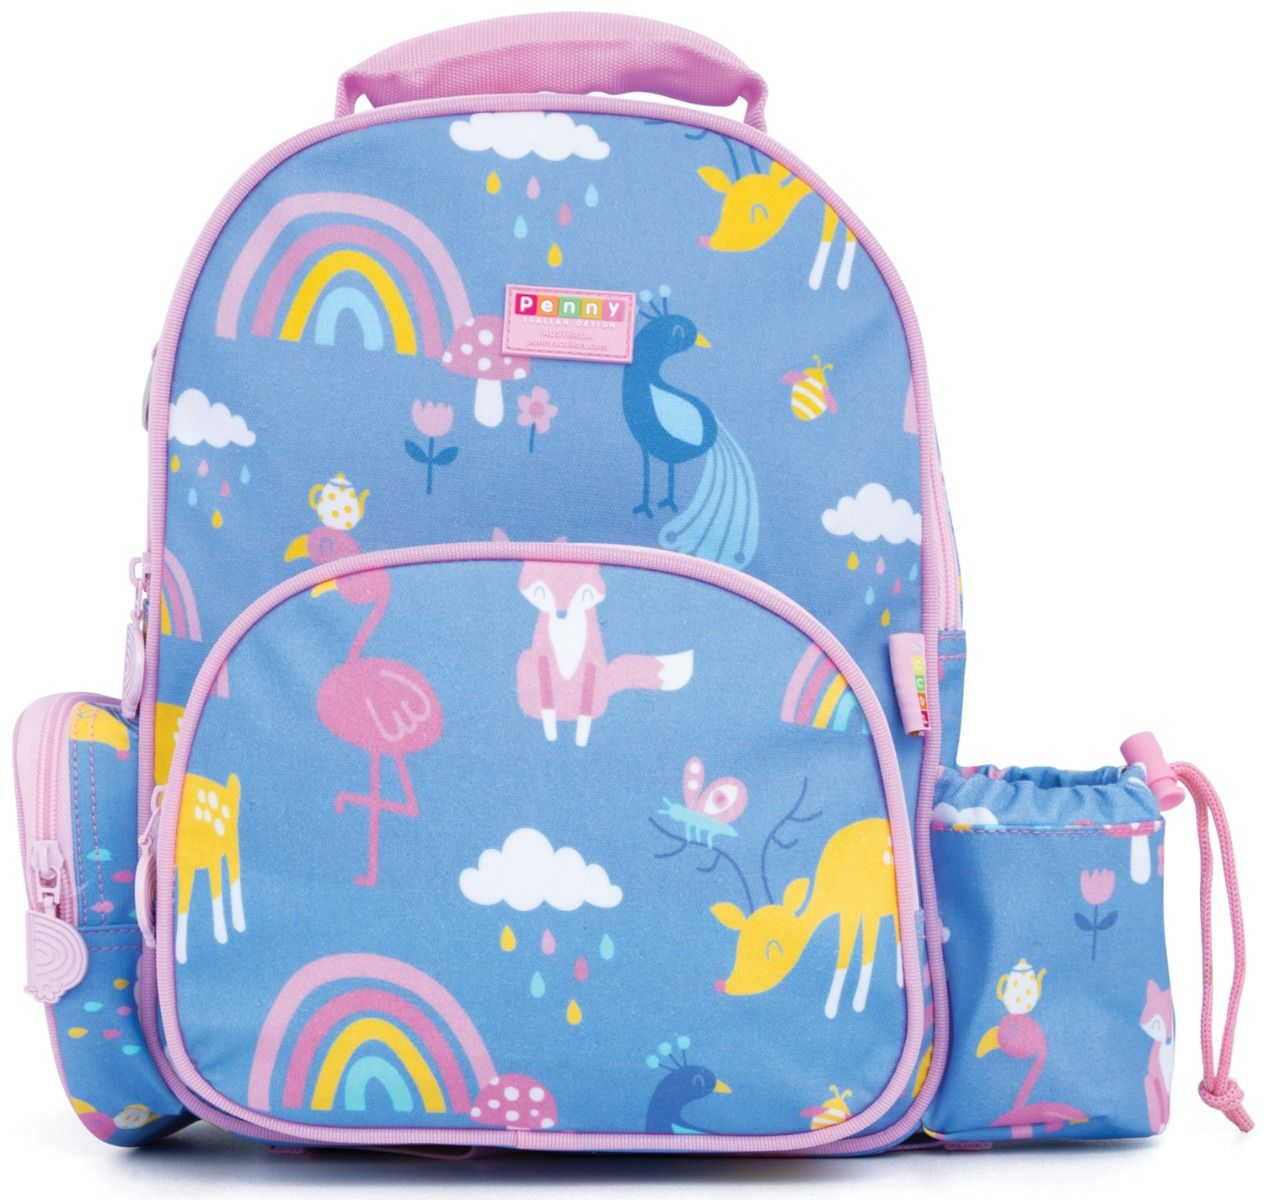 Rainbow Days Backpack Medium